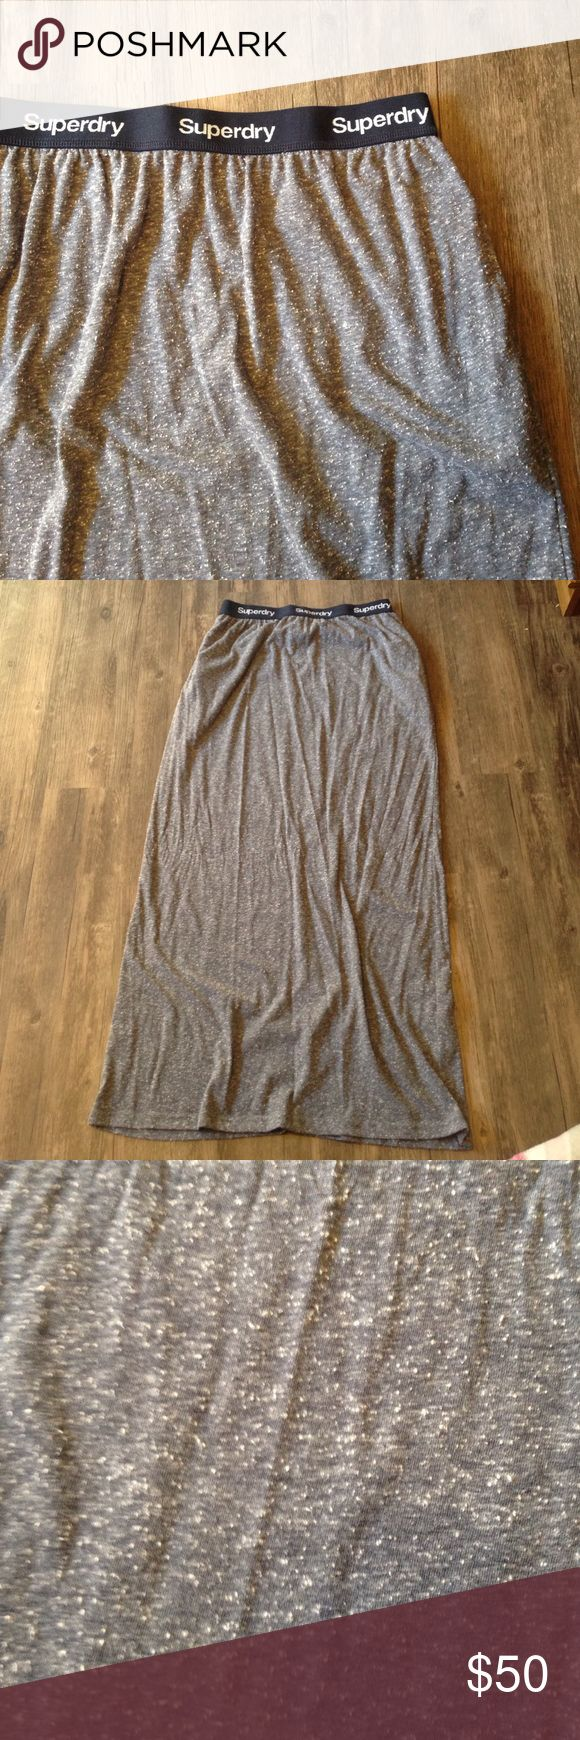 "Superdry Gray Maxi Skirt Good shape. Heather gray. Pockets.   Waist - 14"",  Length - 39""  Please don't hesitate to ask questions!  Same/Next day shipping! Superdry Skirts Maxi"